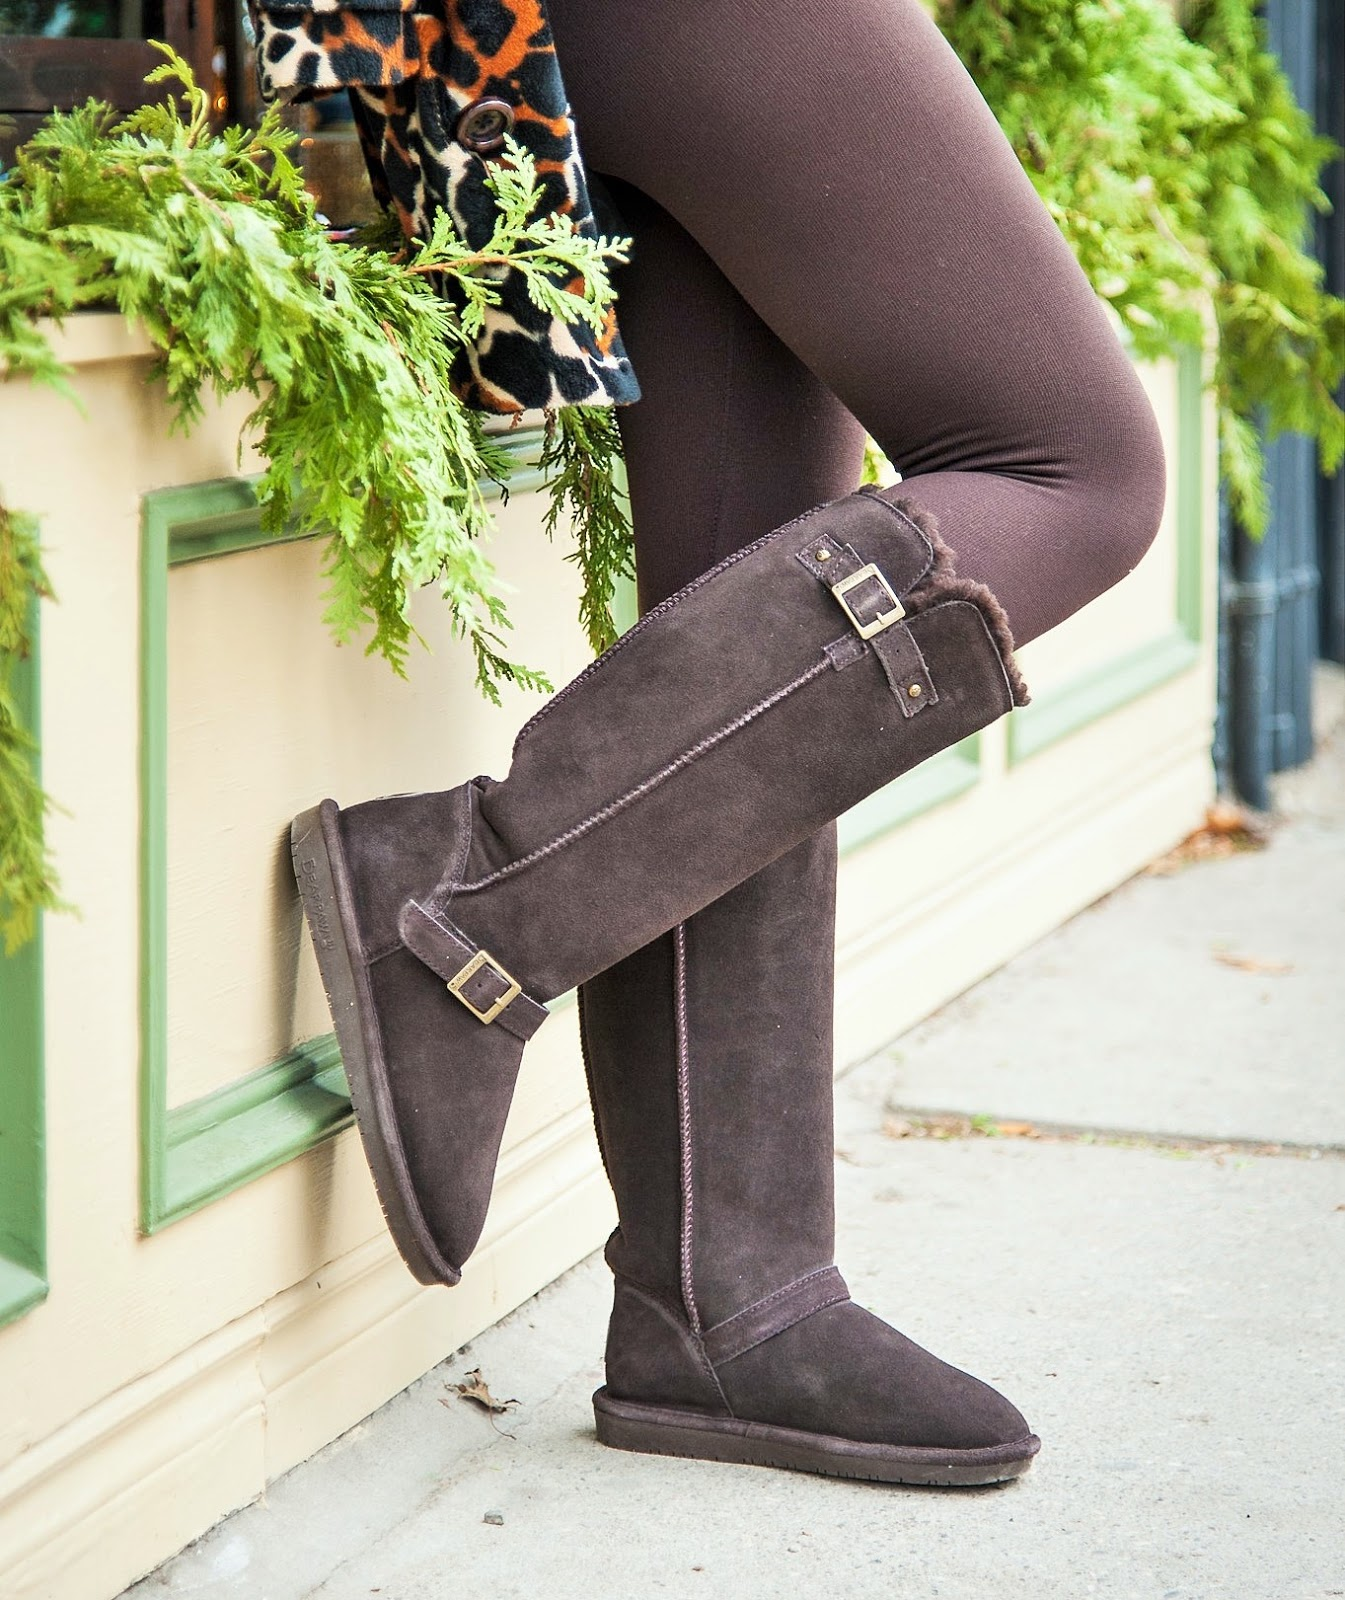 HOLIDAY WEEKEND SHOPPING OUTFIT FEATURING BEARPAW JOHANNA WINTER BOOTS